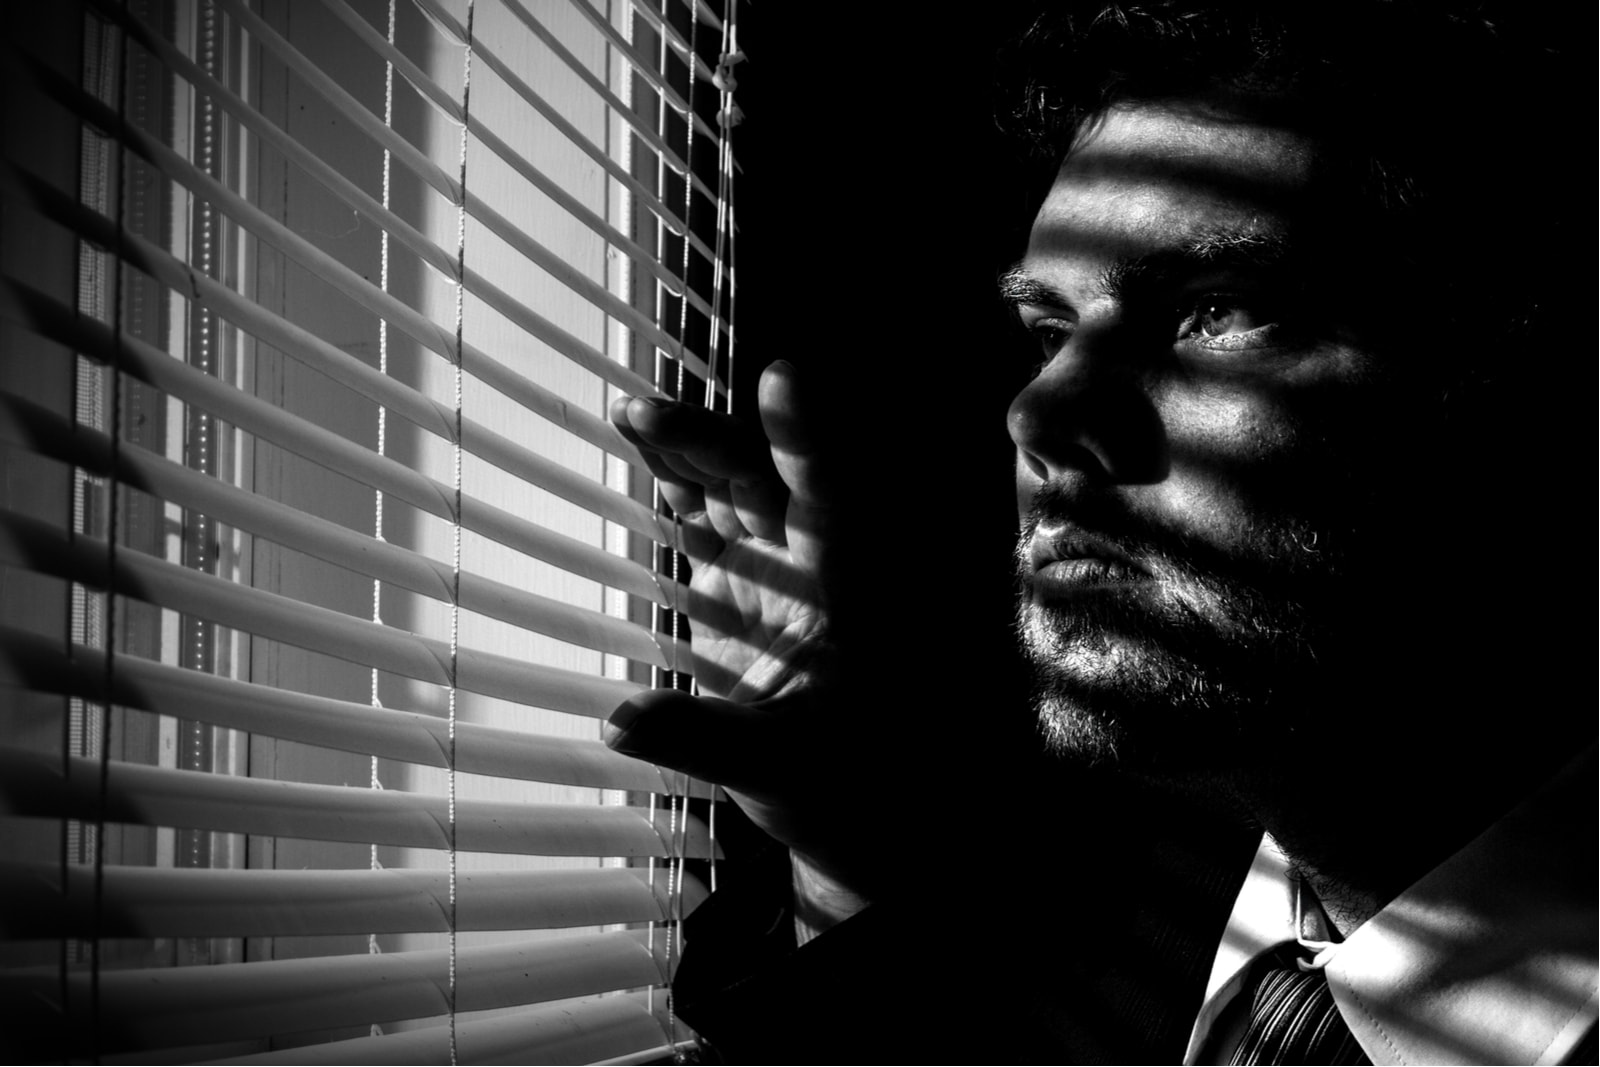 a man from a dark room peeks through the blinds